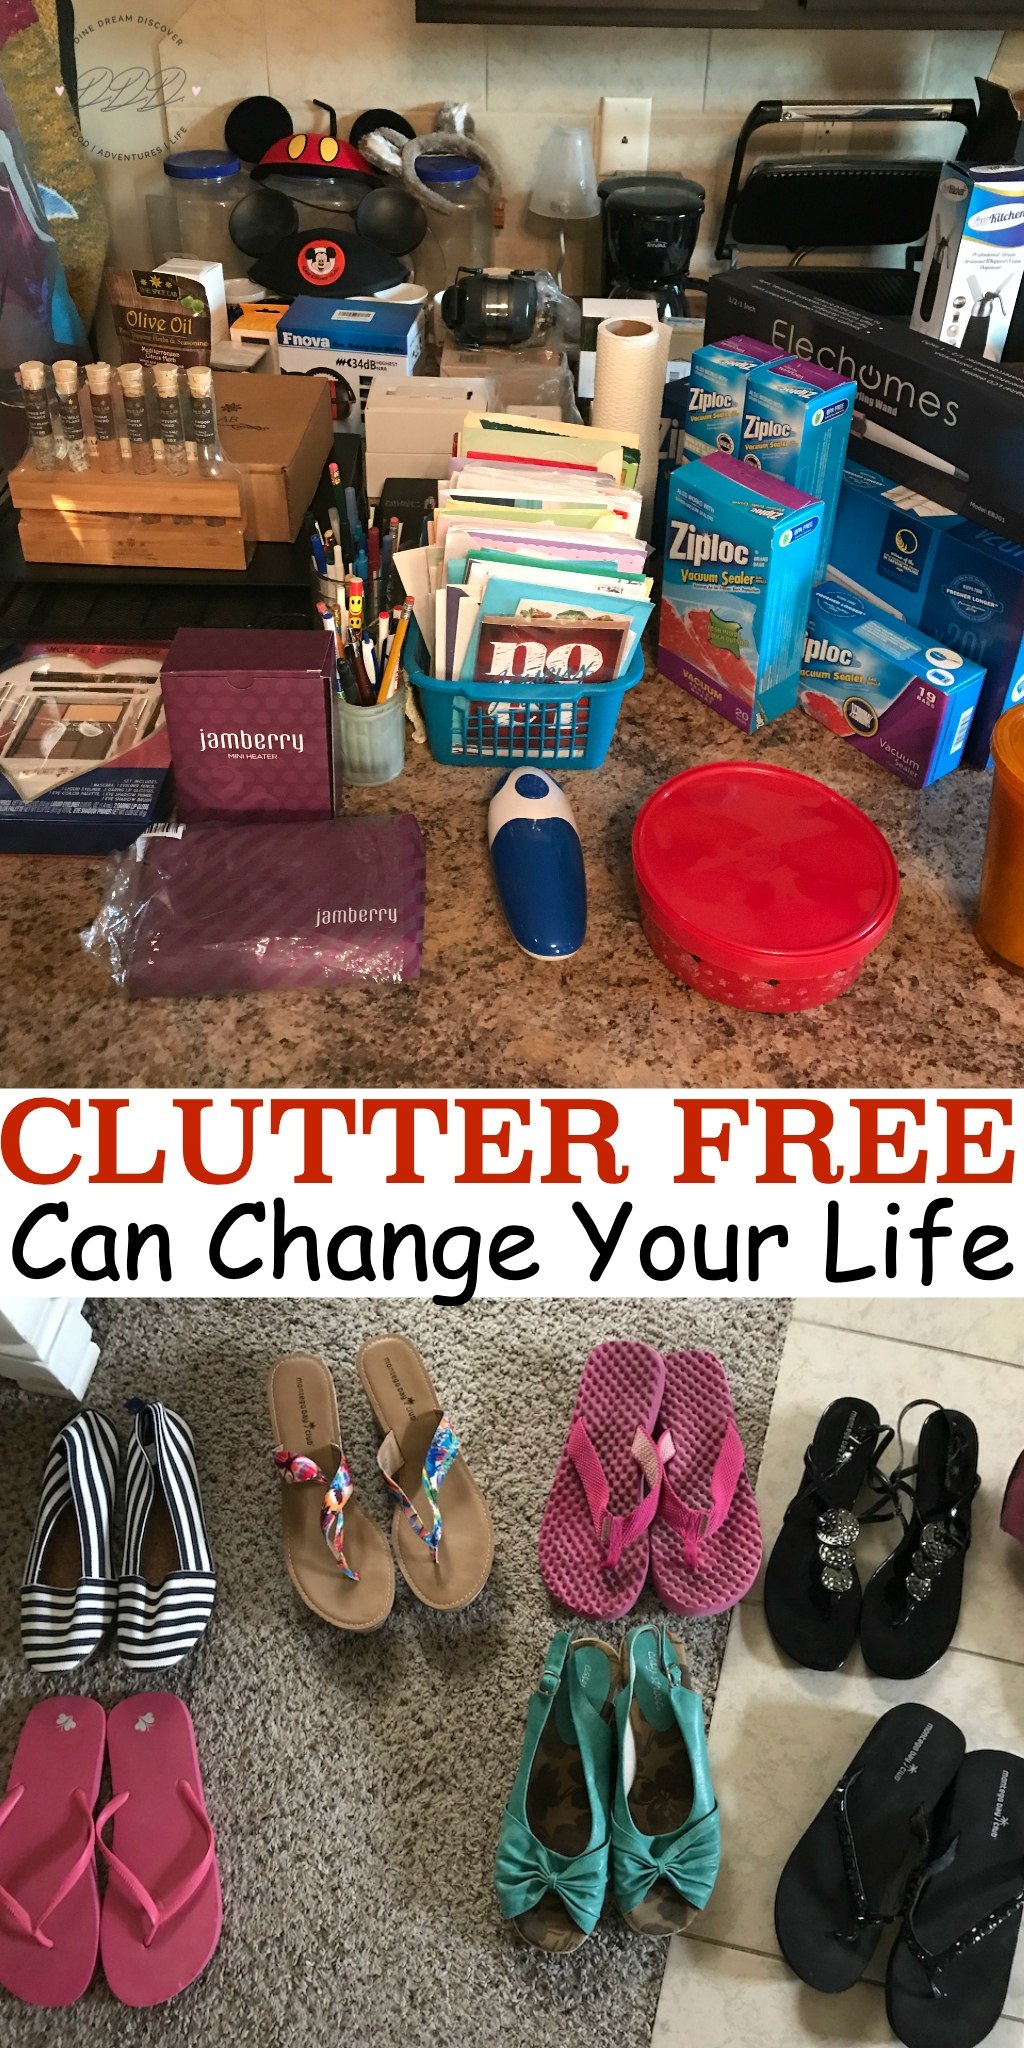 Just as traffic and roadblocks can leave you feeling stressed, so can clutter in your home. Easily reduce stress and live clutter free with these tips.